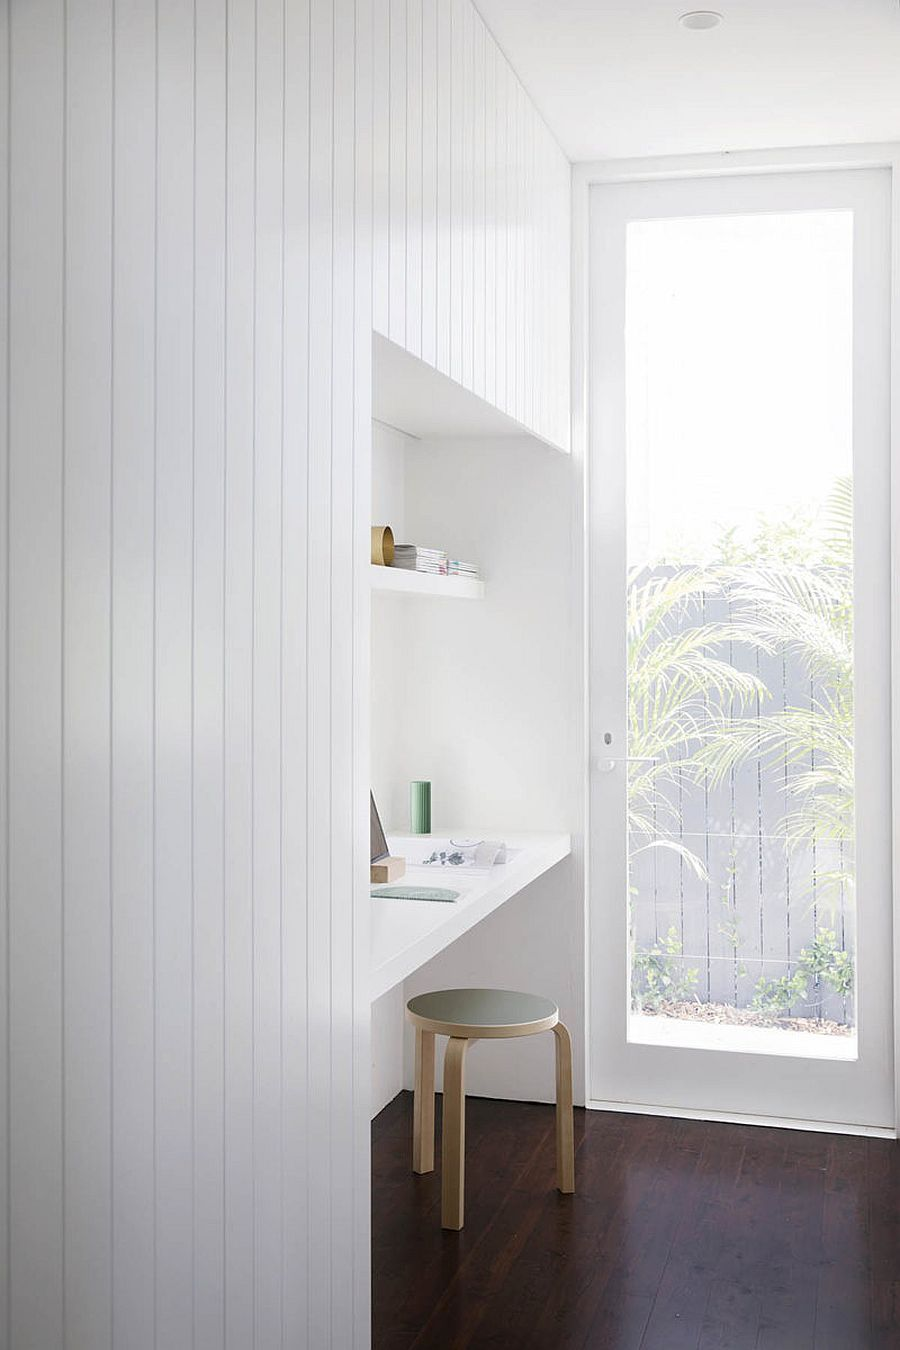 Utilizing-the-little-niche-in-the-hallway-to-create-a-functional-space-41413